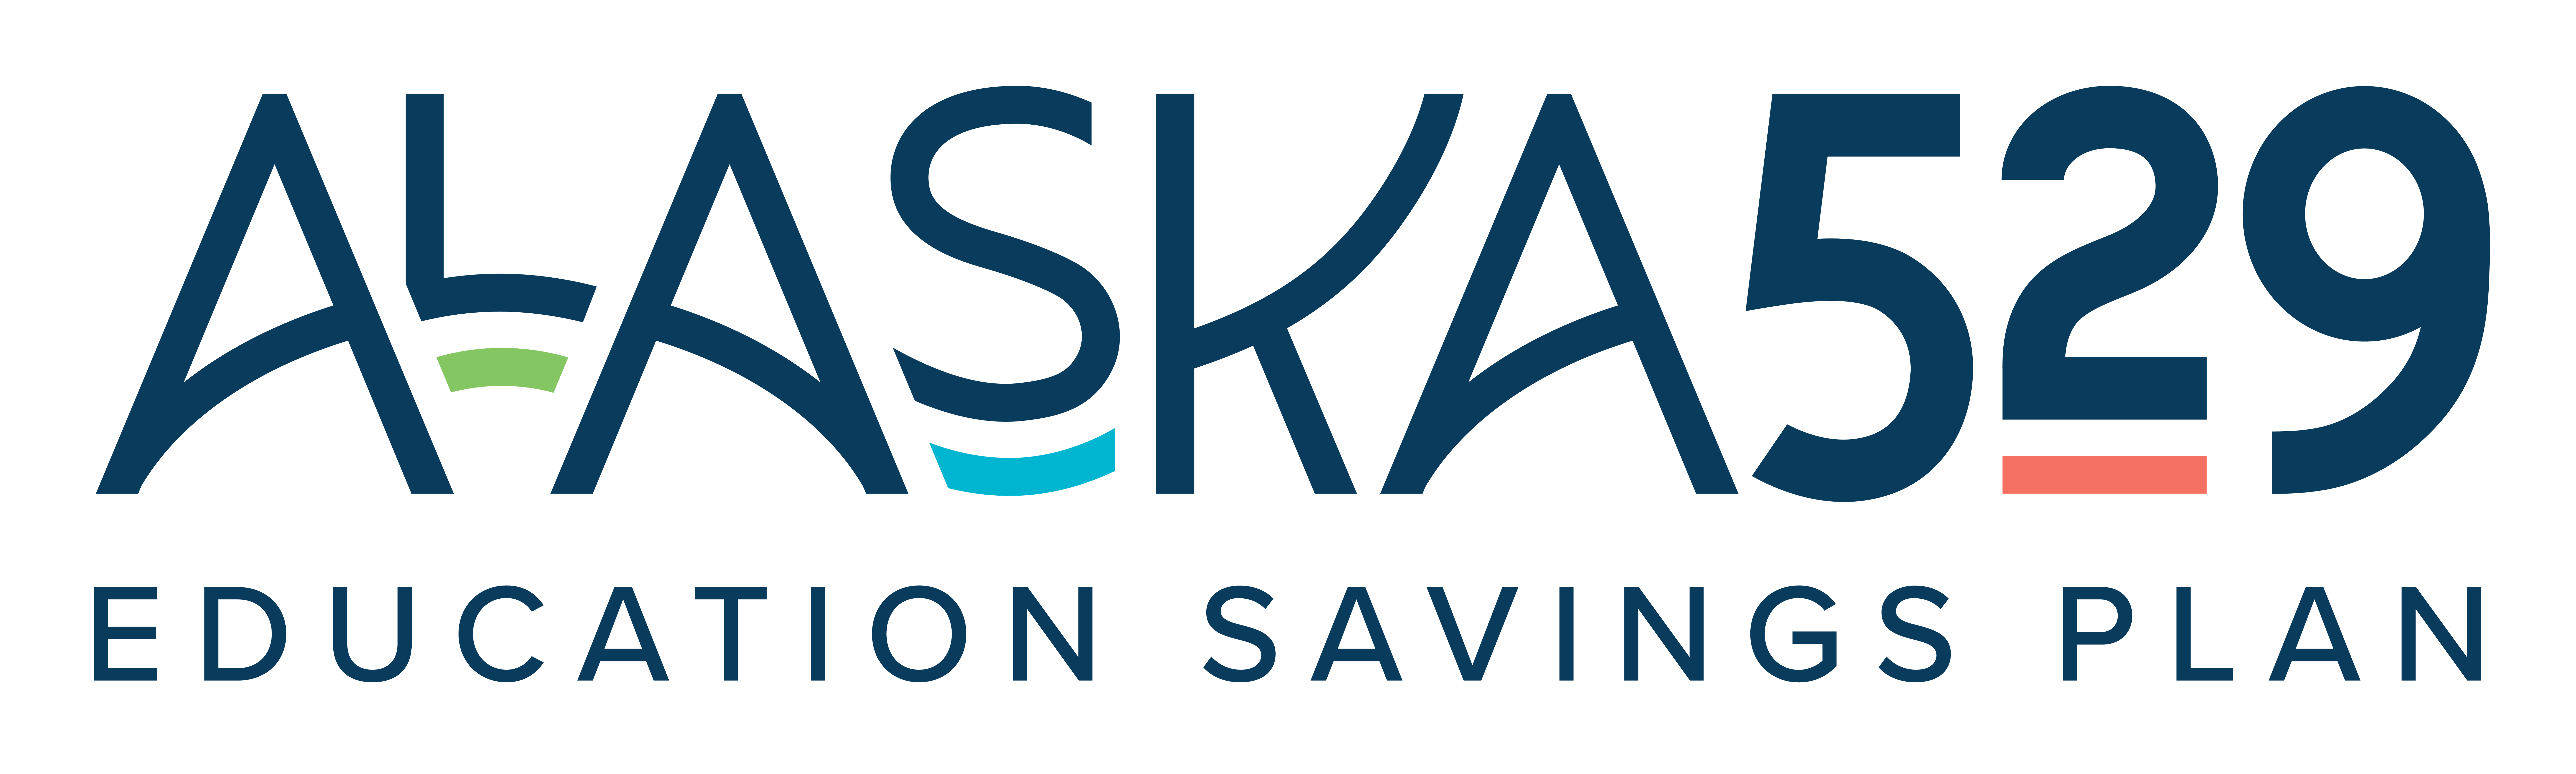 The University of Alaska College Savings Plan